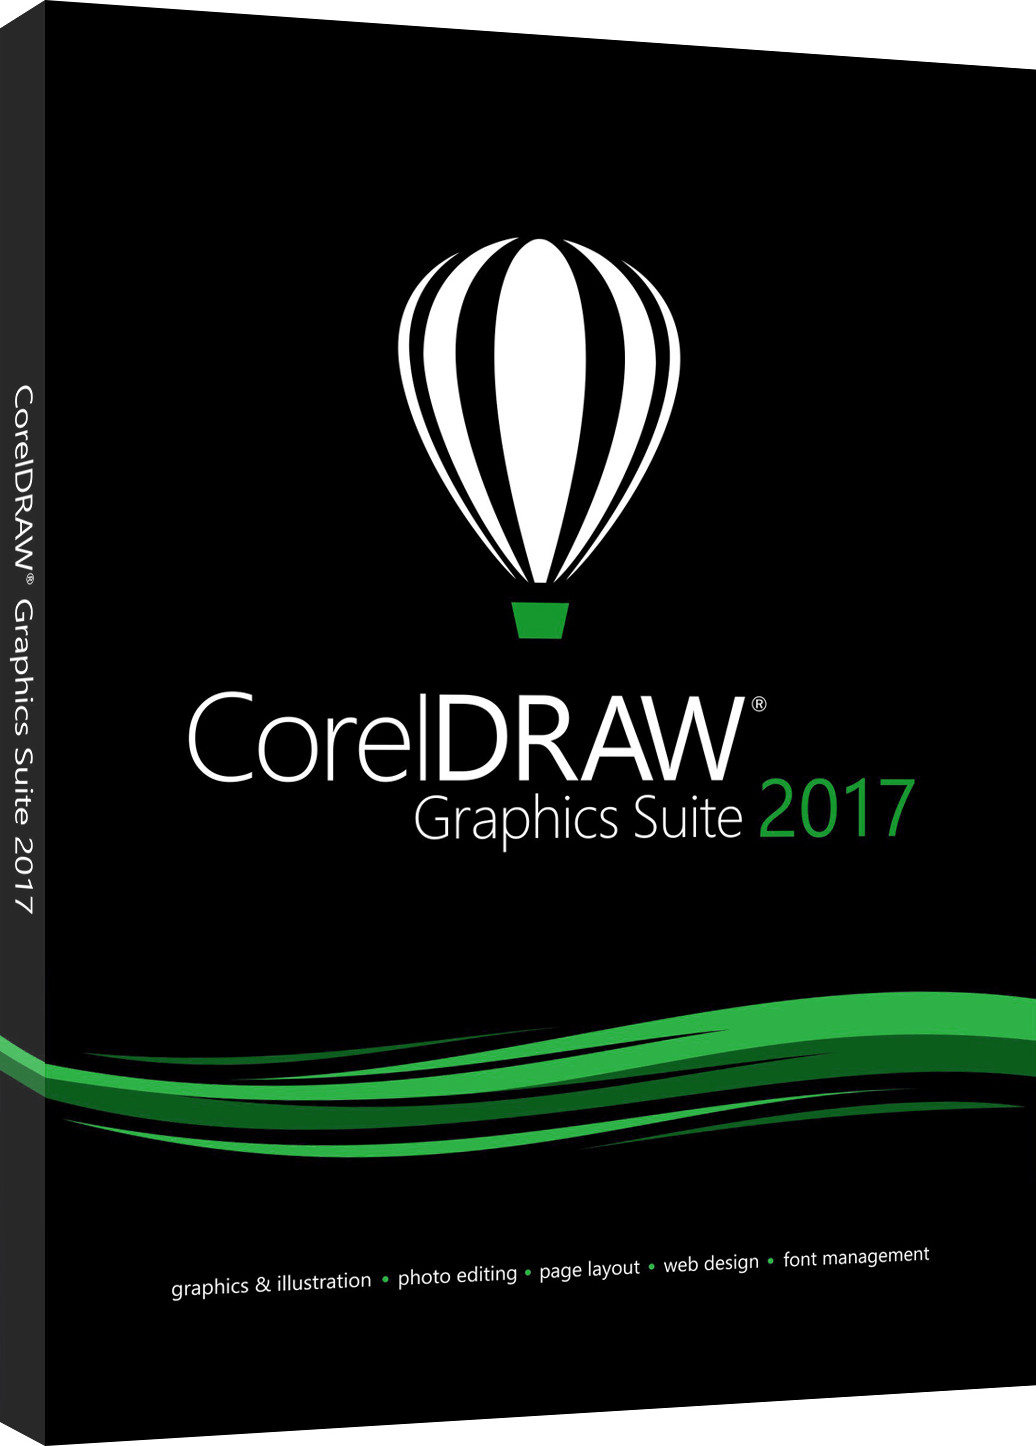 Corel CorelDRAW Graphics Suite 2017 (DE) (Downl...